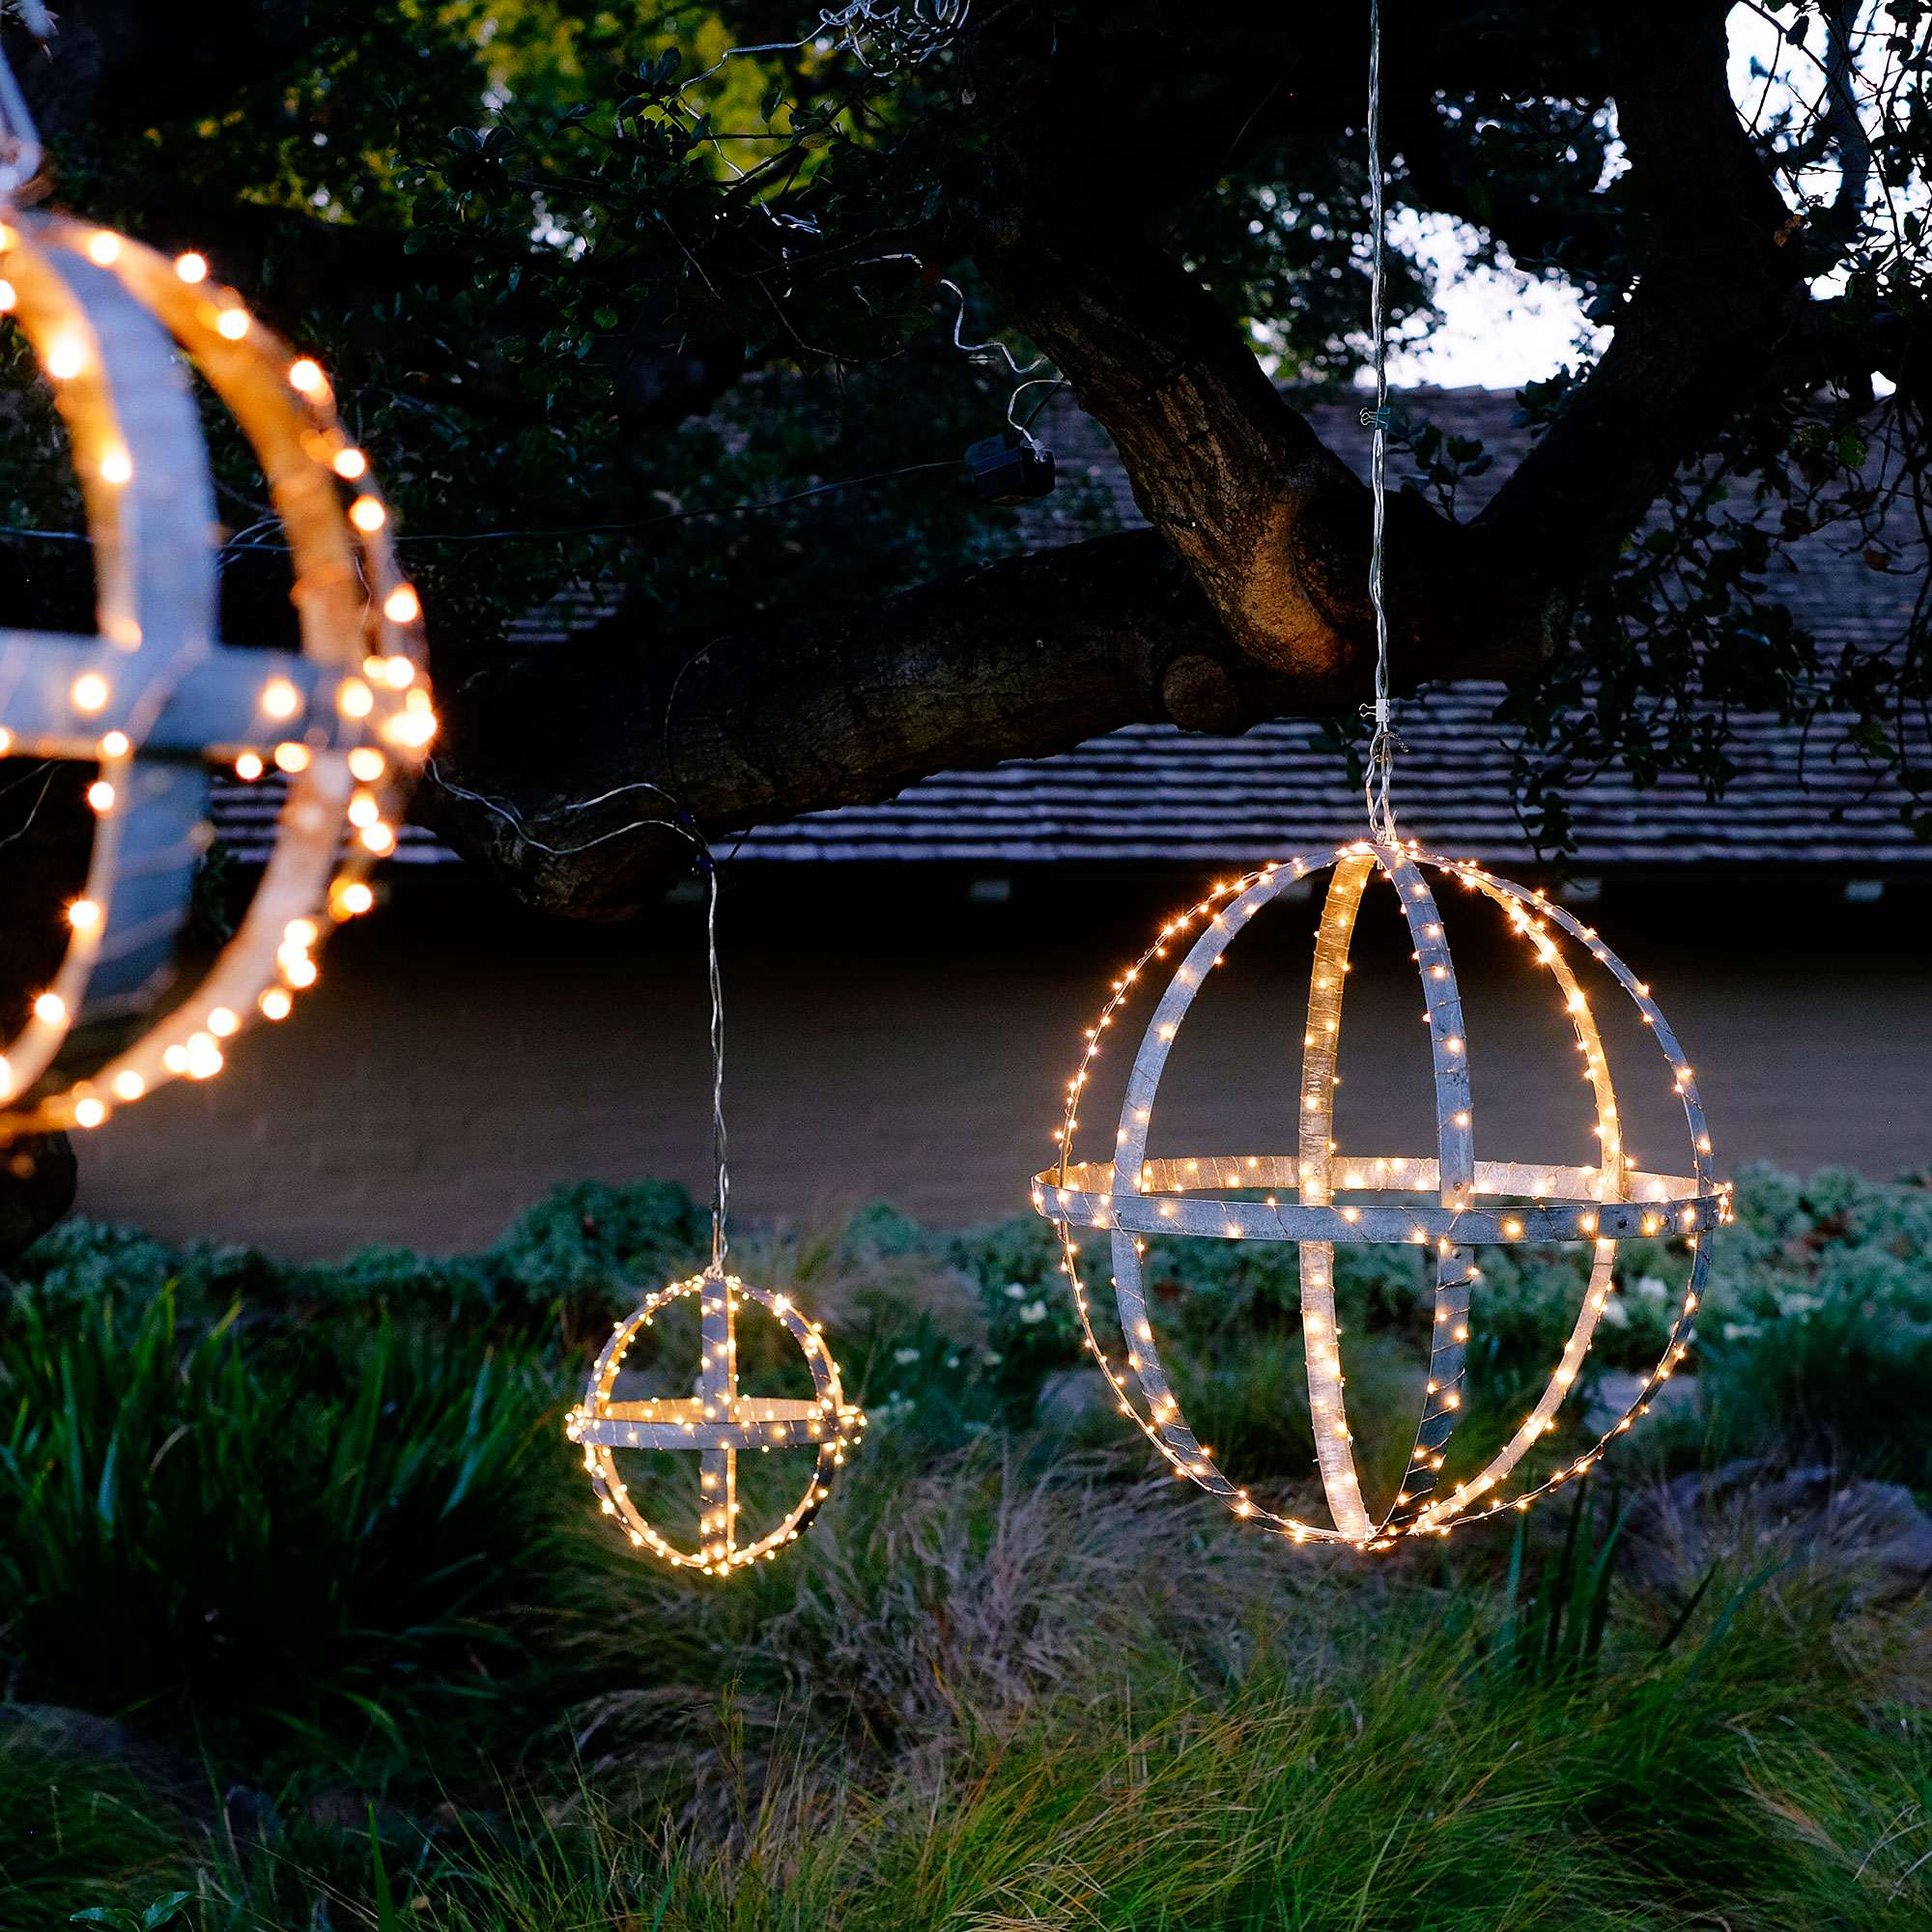 Outdoor Christmas Lighting Ideas: 29 Outdoor Lighting Ideas